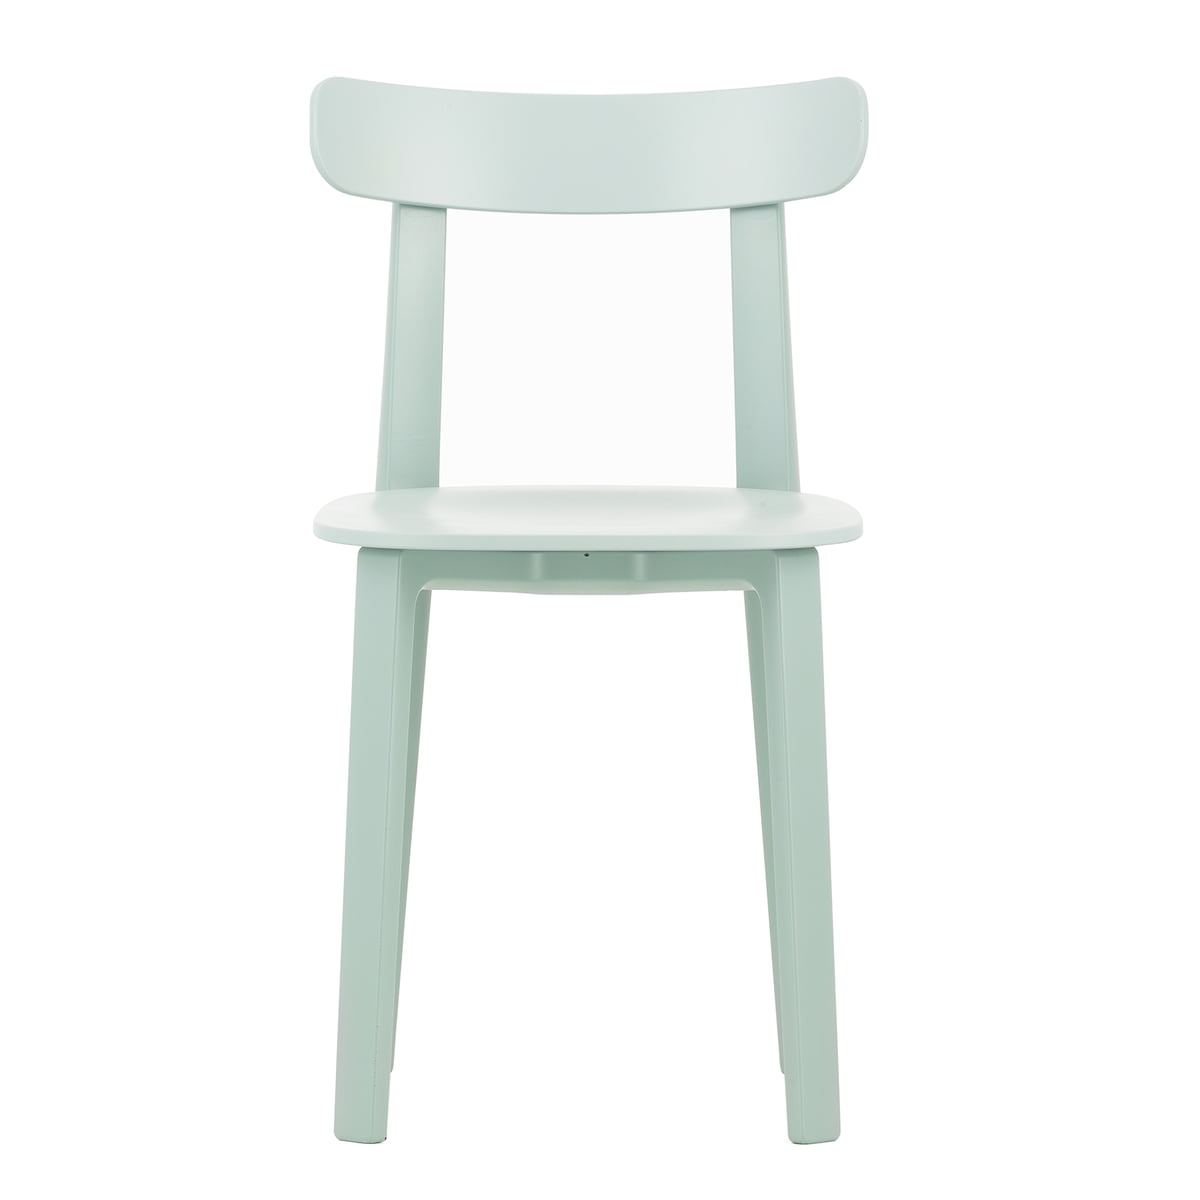 purchase the all plastic chair by vitra